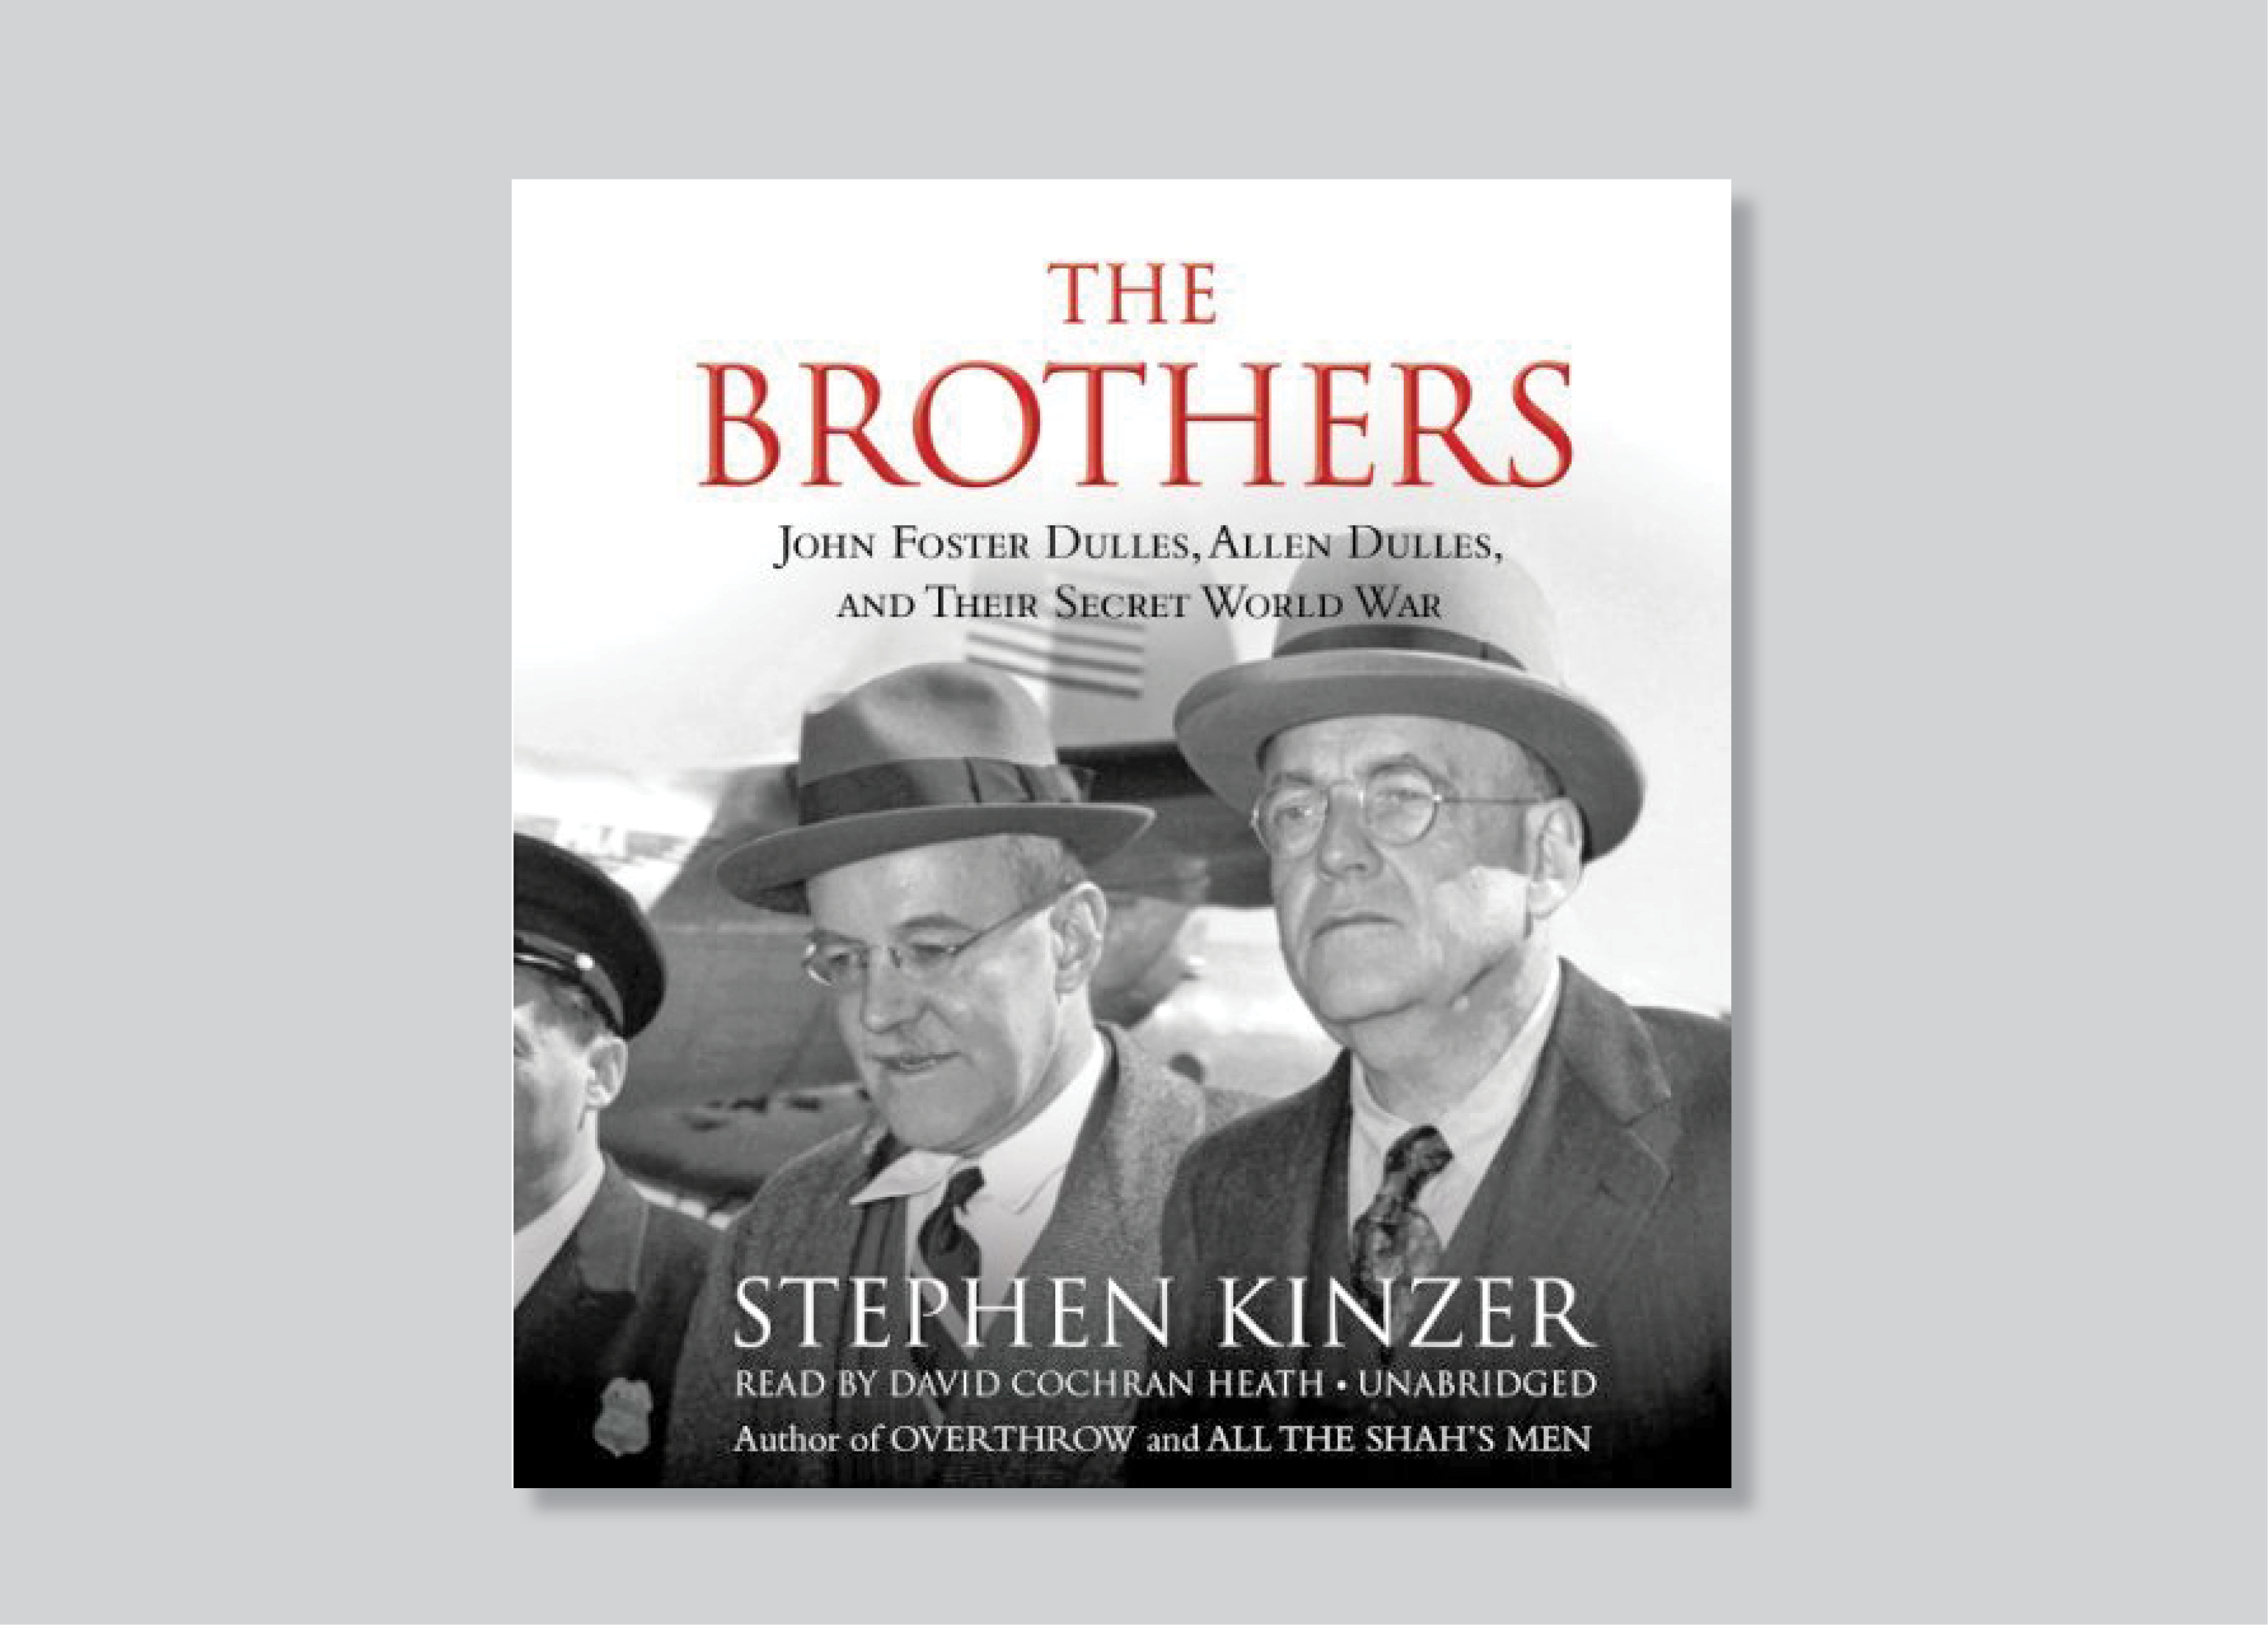 STEPHEN KINNSER THE BROTHERS PDF DOWNLOAD